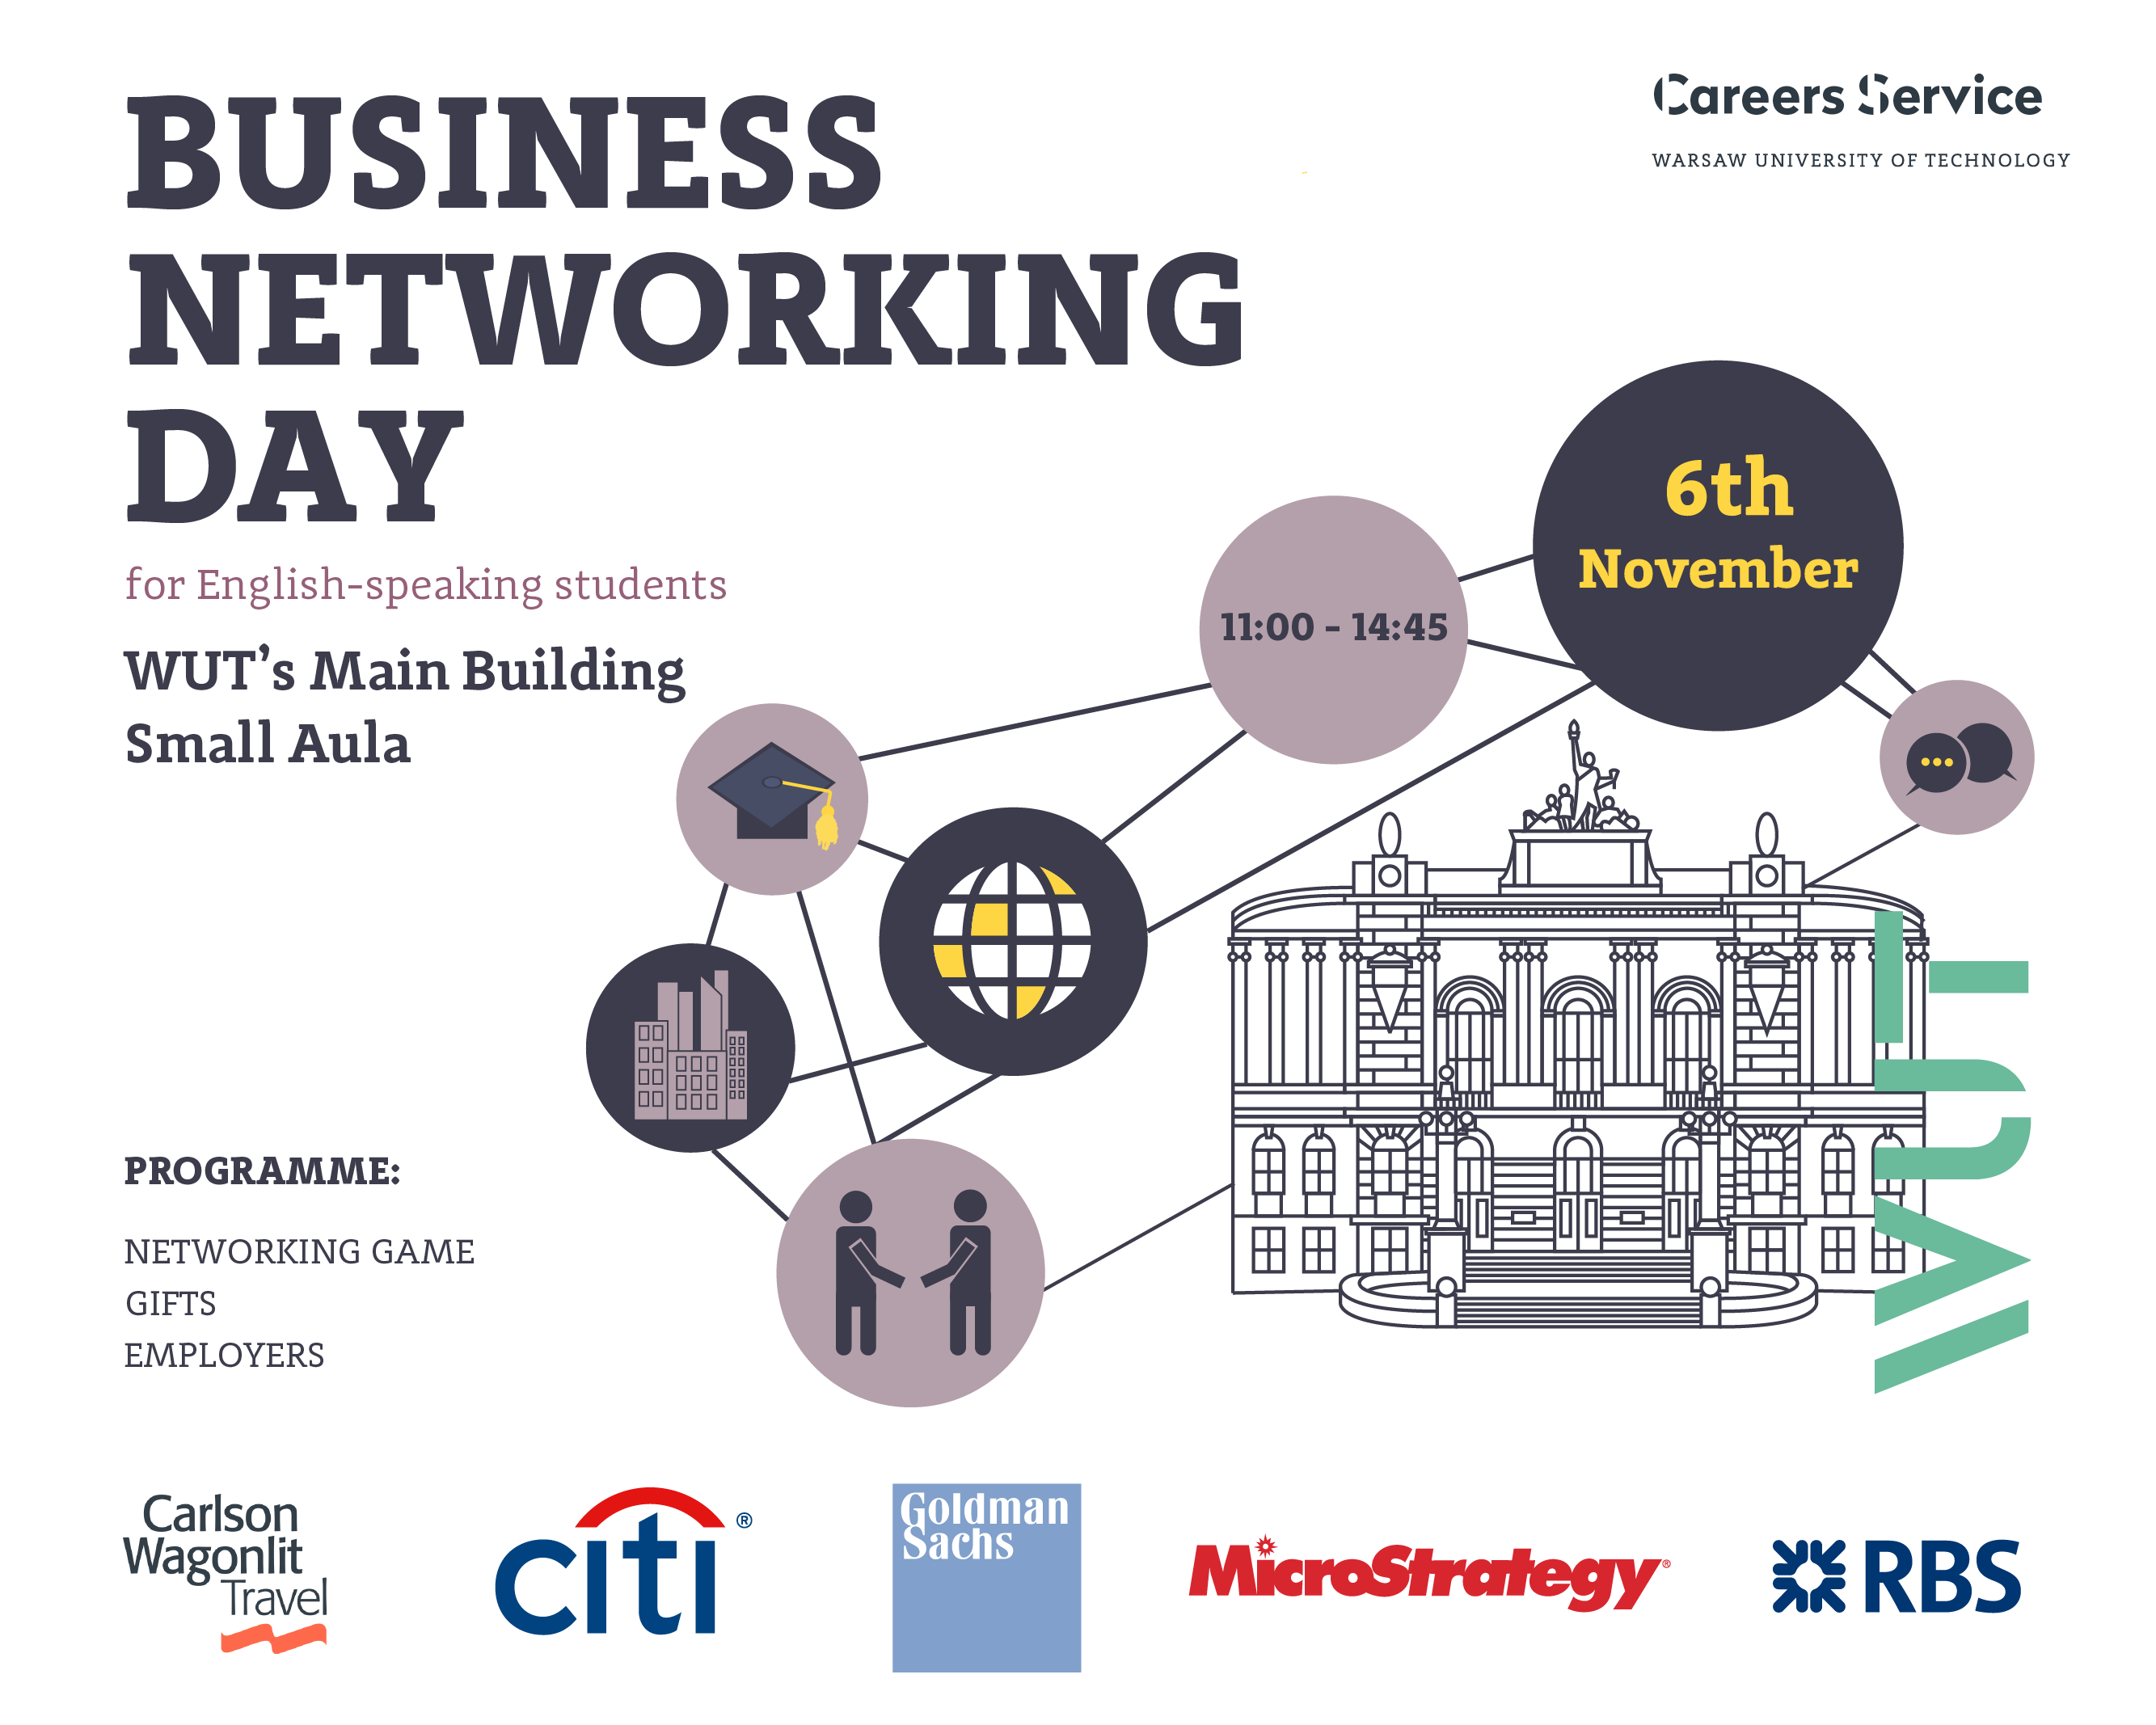 Business Networking Day for English-speaking students